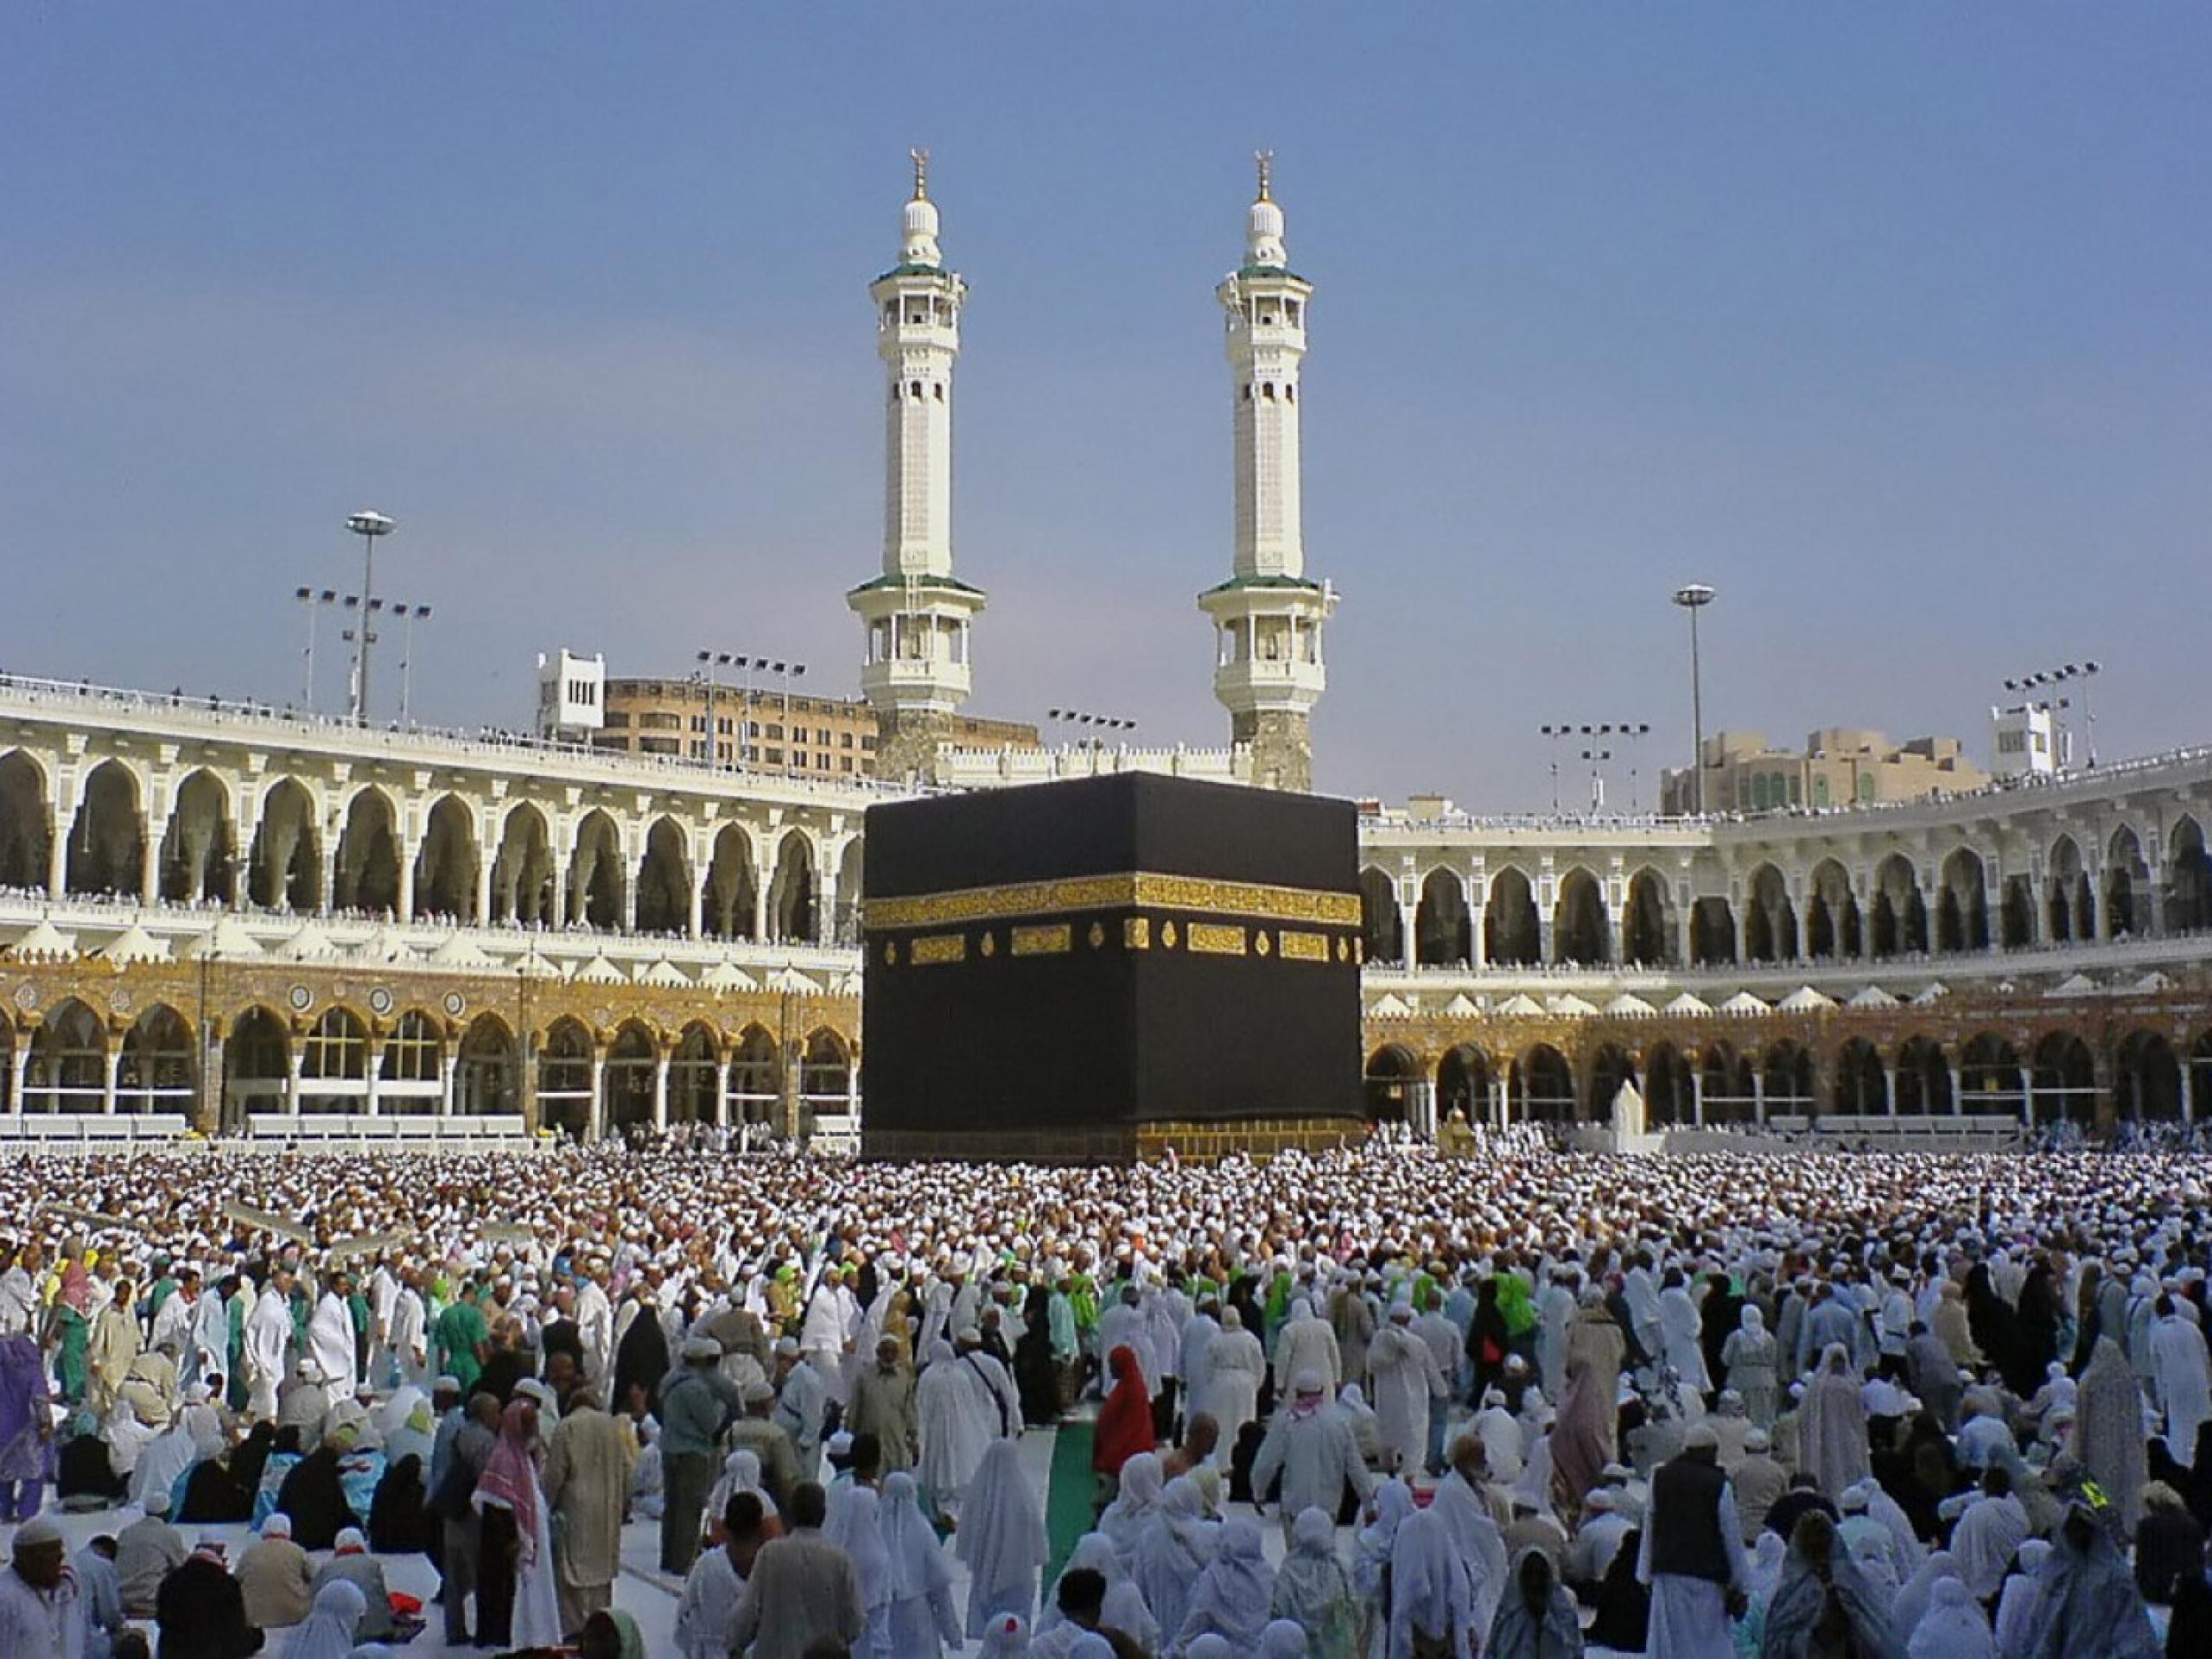 Download Free Mecca Kabba World City 525678 | HD Wallpapers ...